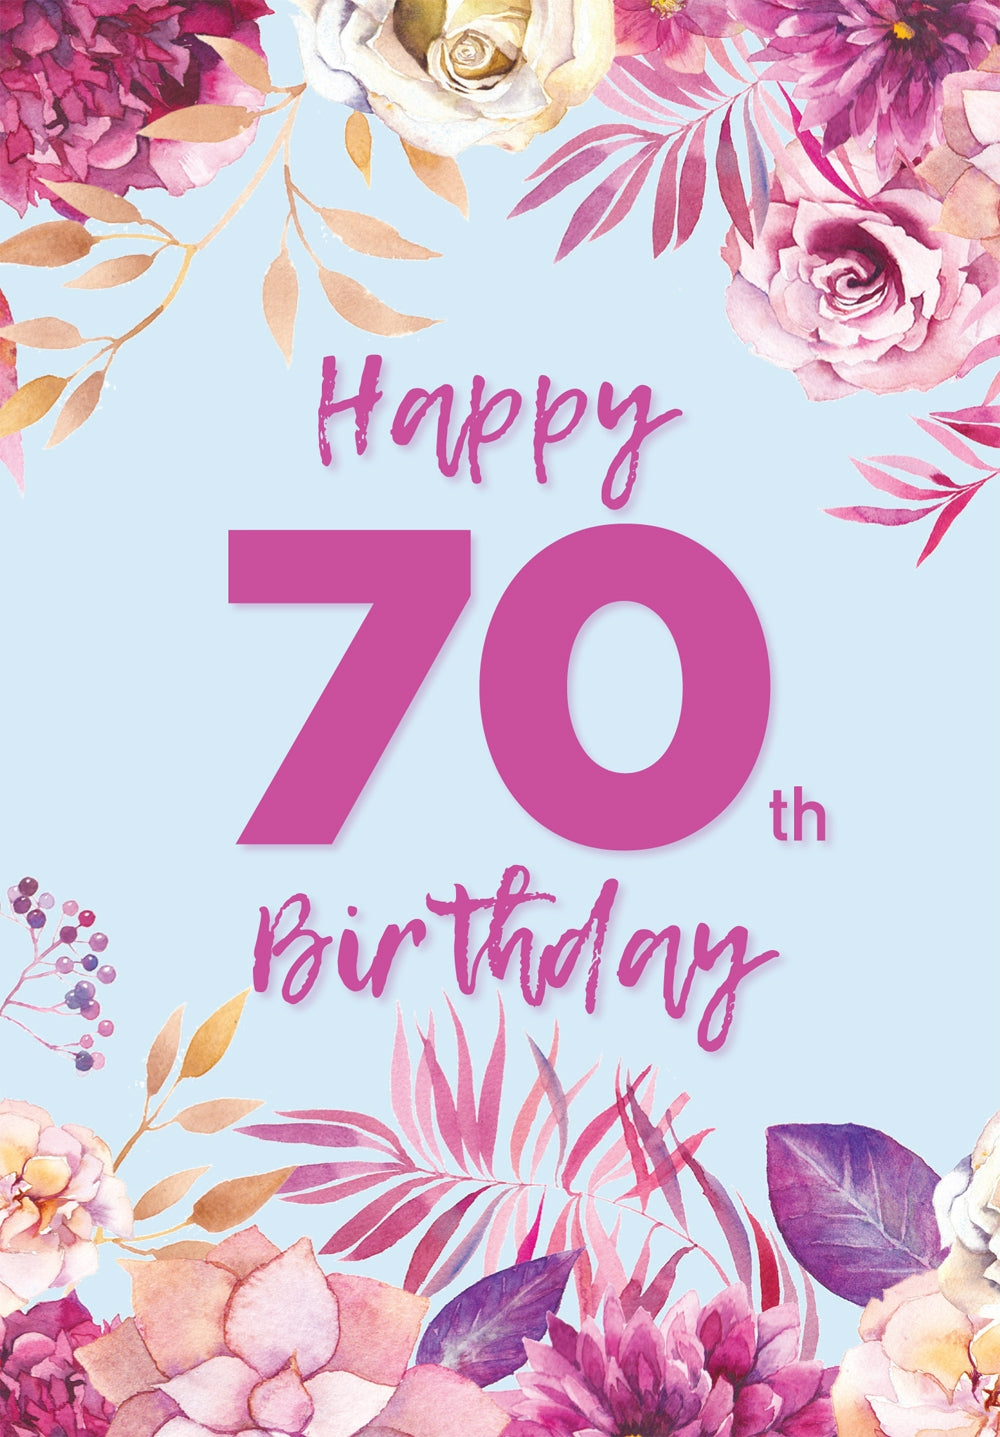 Happy 70Th Birthday -  Flowers Std Card Gloss (6 Pack)Happy 70Th Birthday -  Flowers Std Card Gloss (6 Pack)